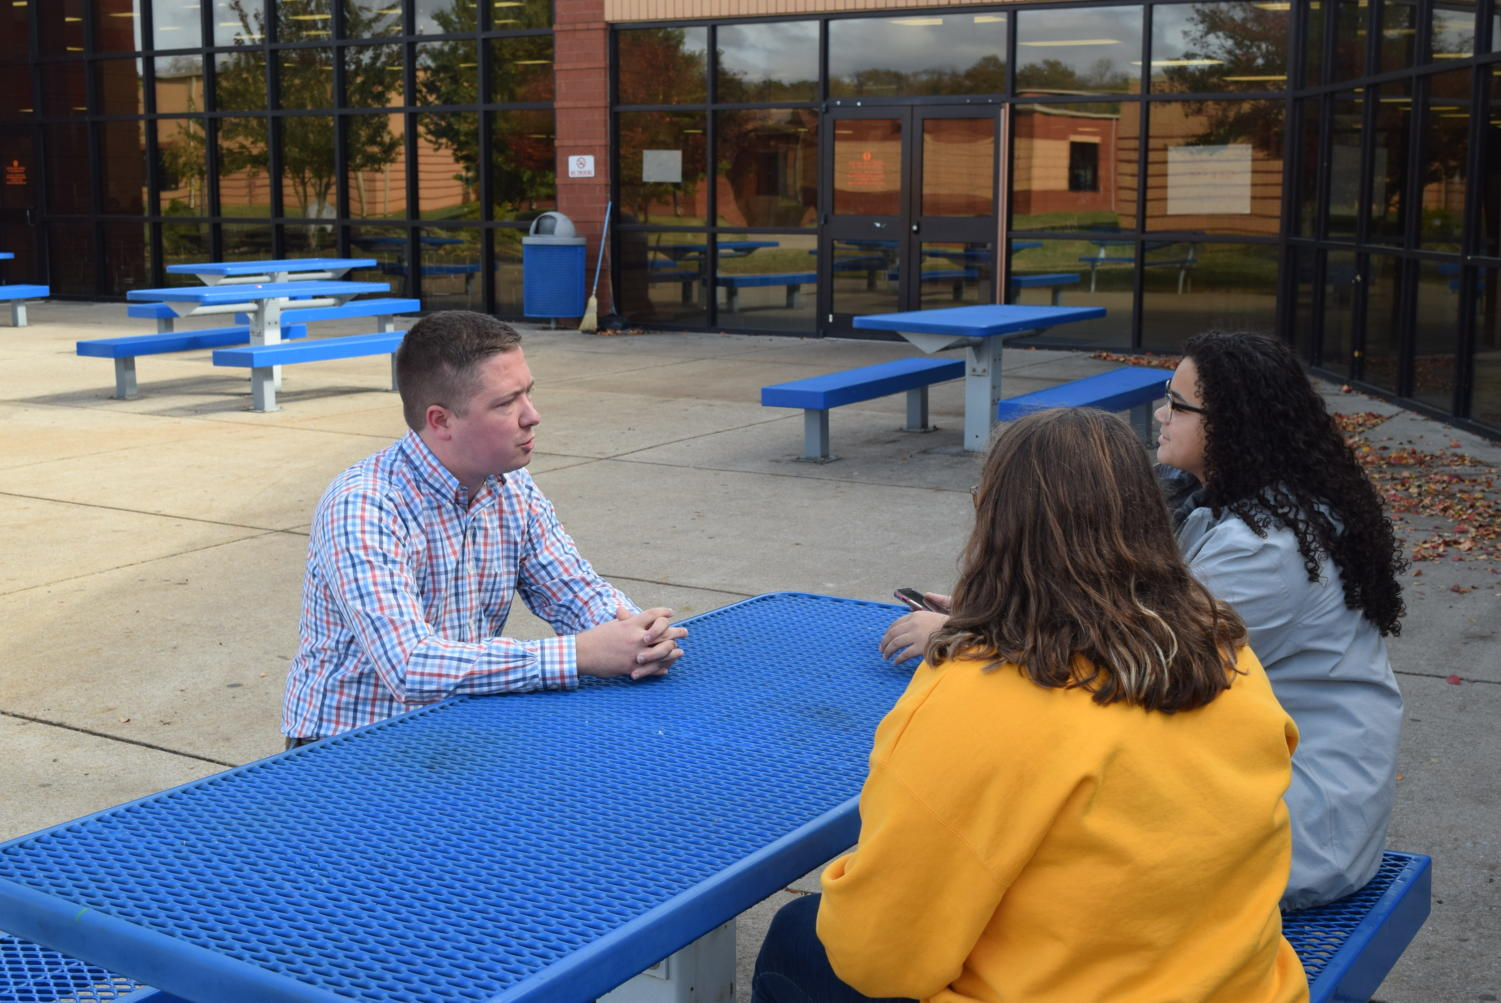 Matthew Hurts speak to the Blackman Voice staff in the courtyard.